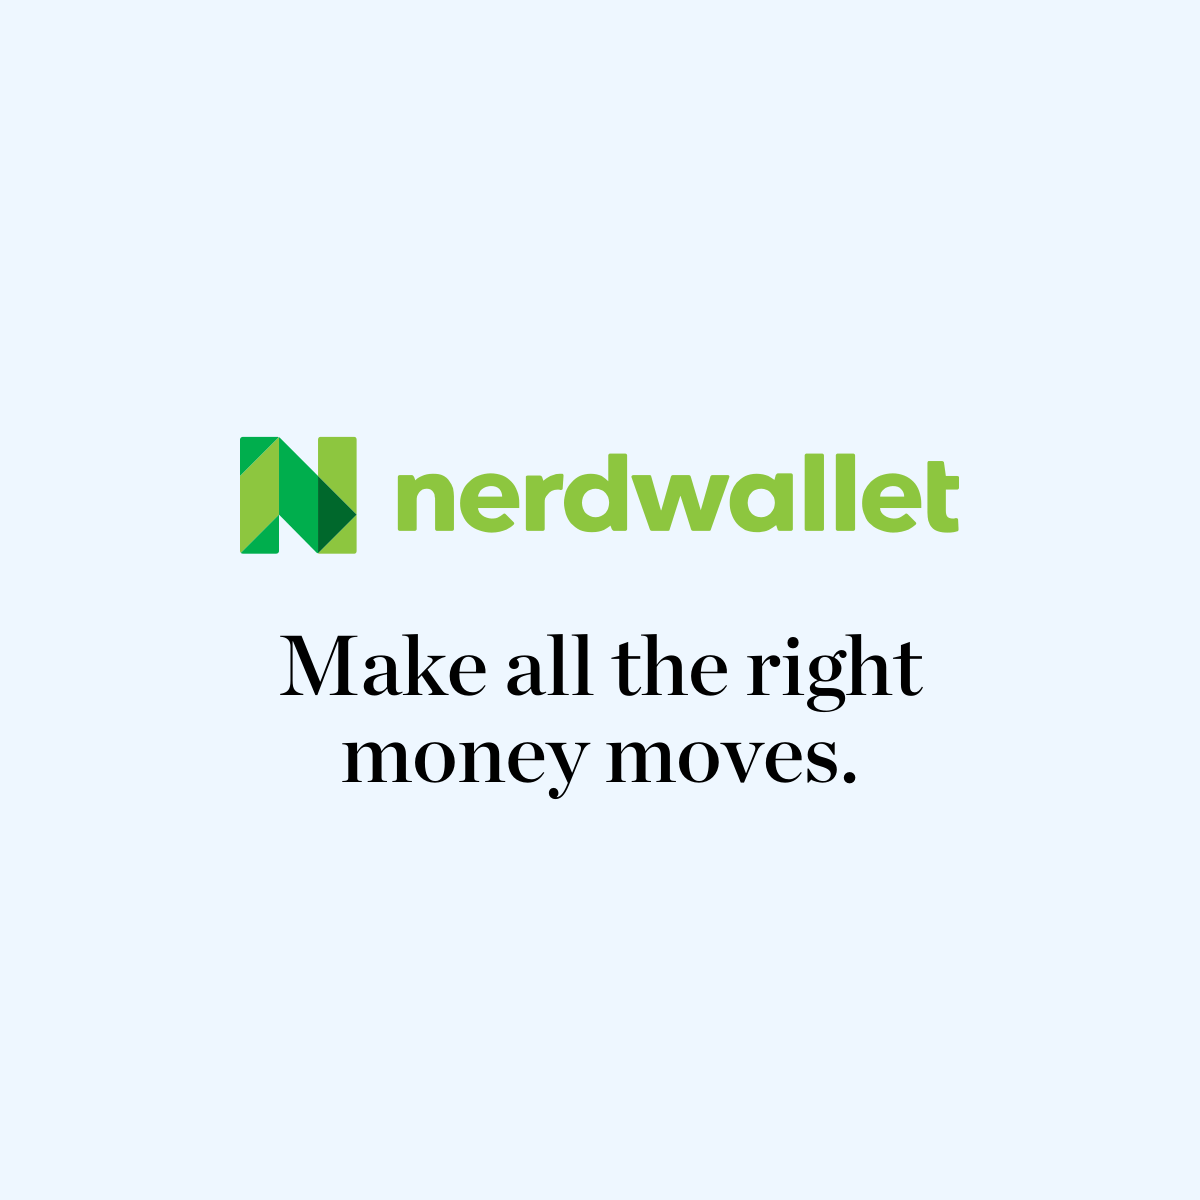 nerdwallet get more from your money